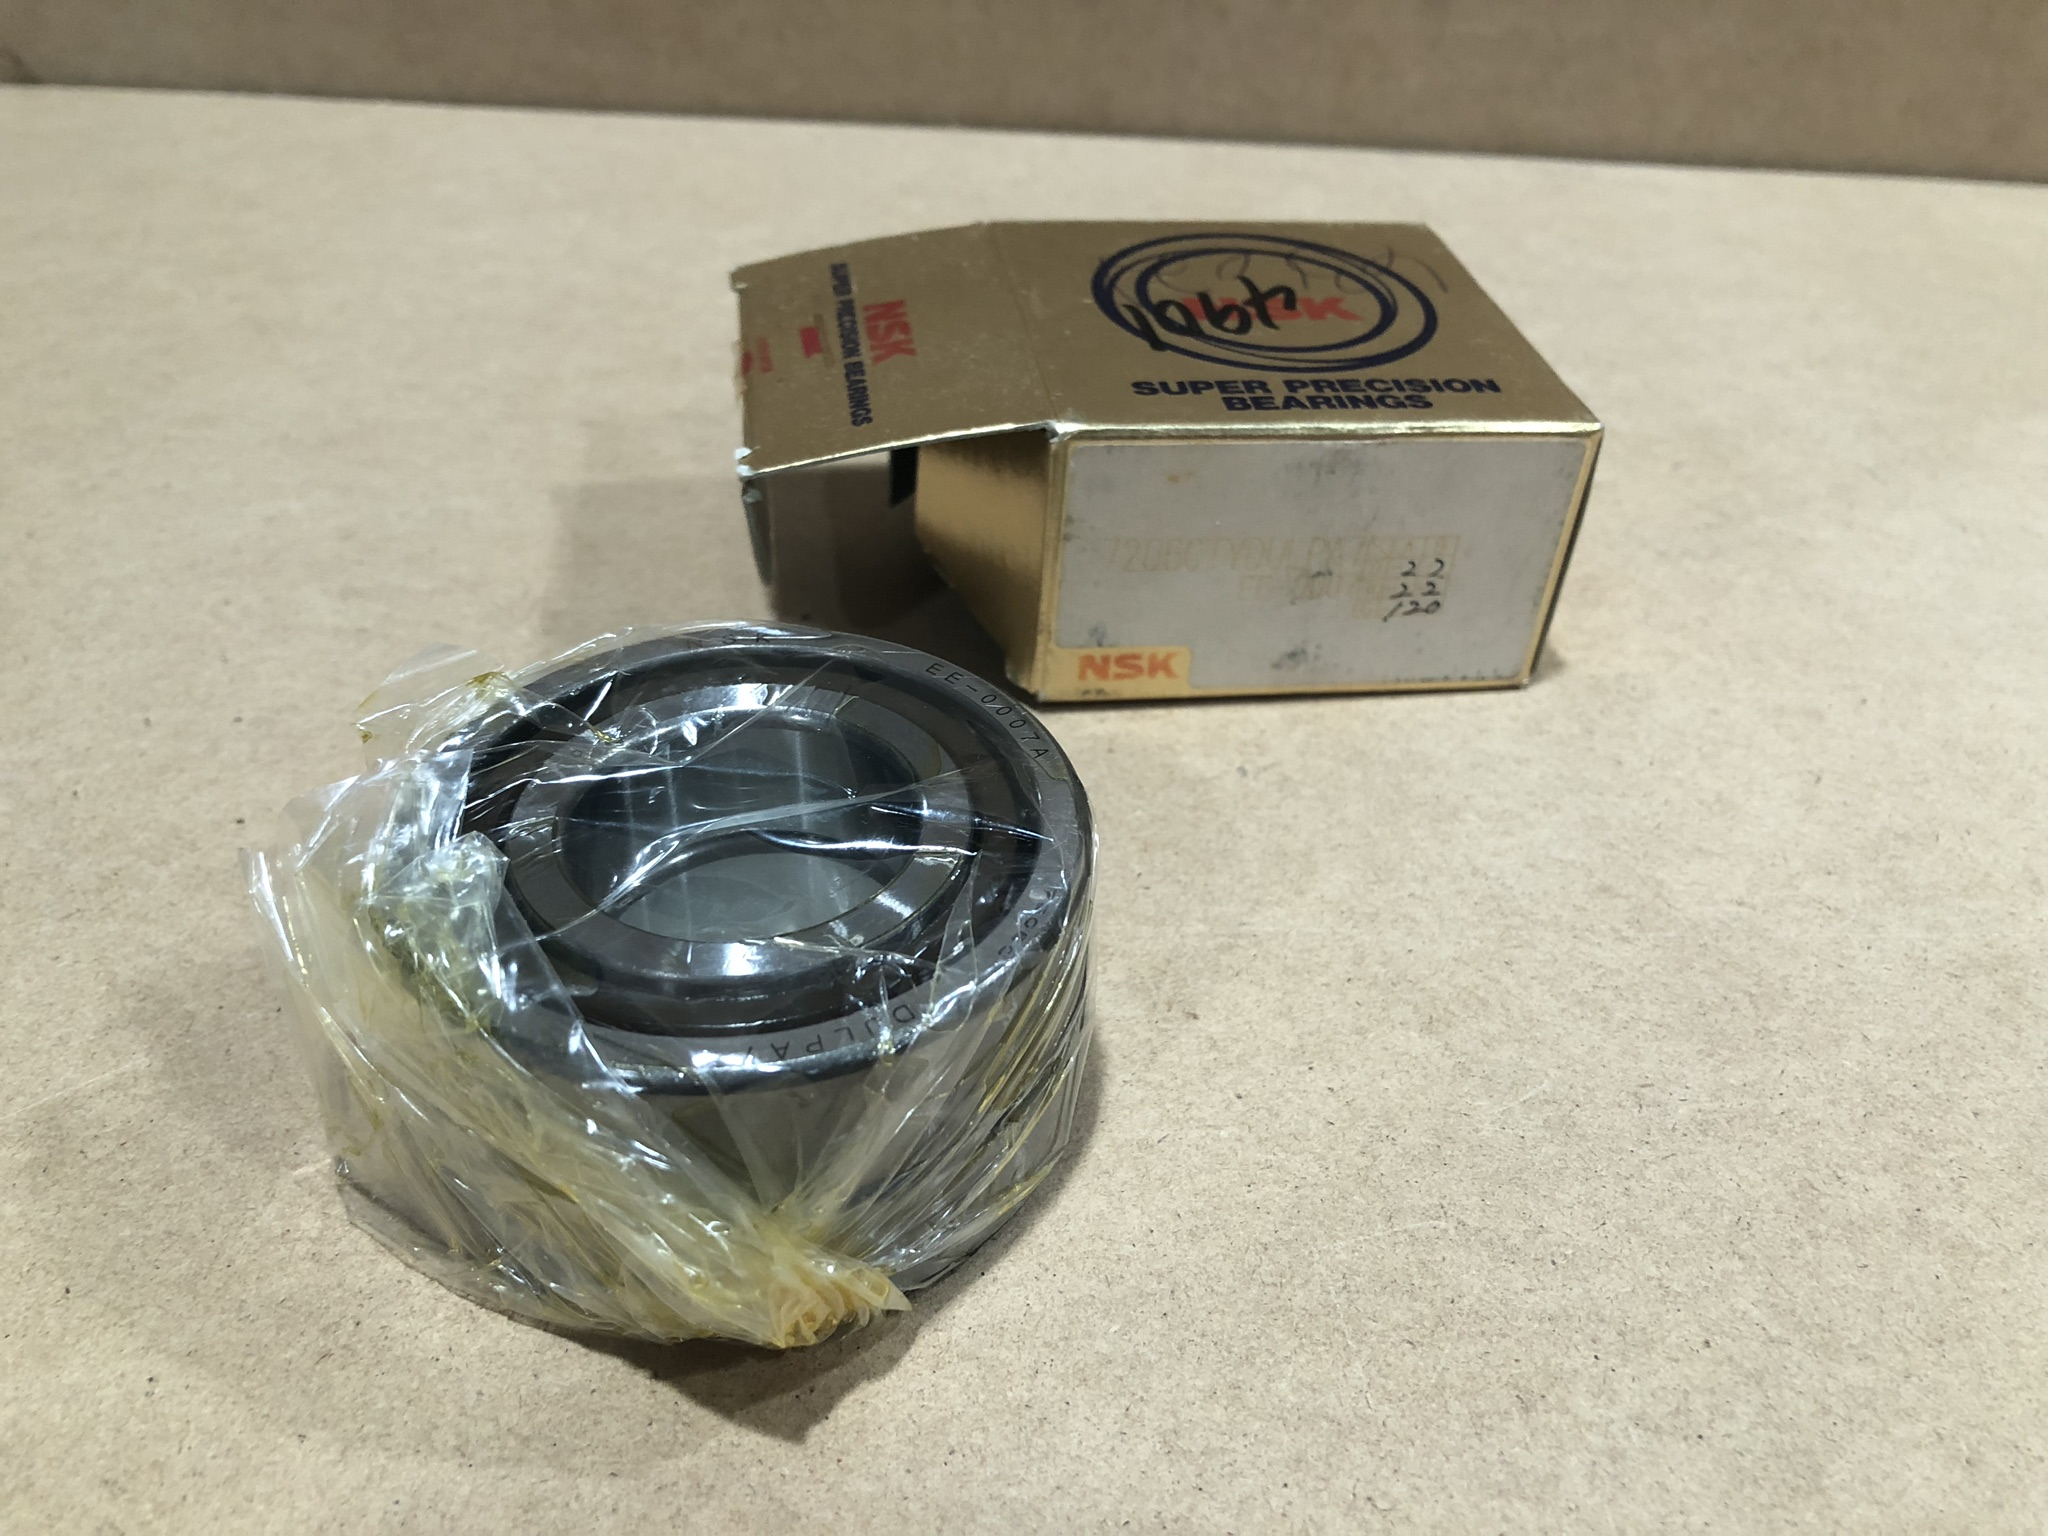 NSK 7206CTYDBC8P5 SUPER PRECISION BEARINGS FAFNIR 2MM206WI DUM ABEC 5